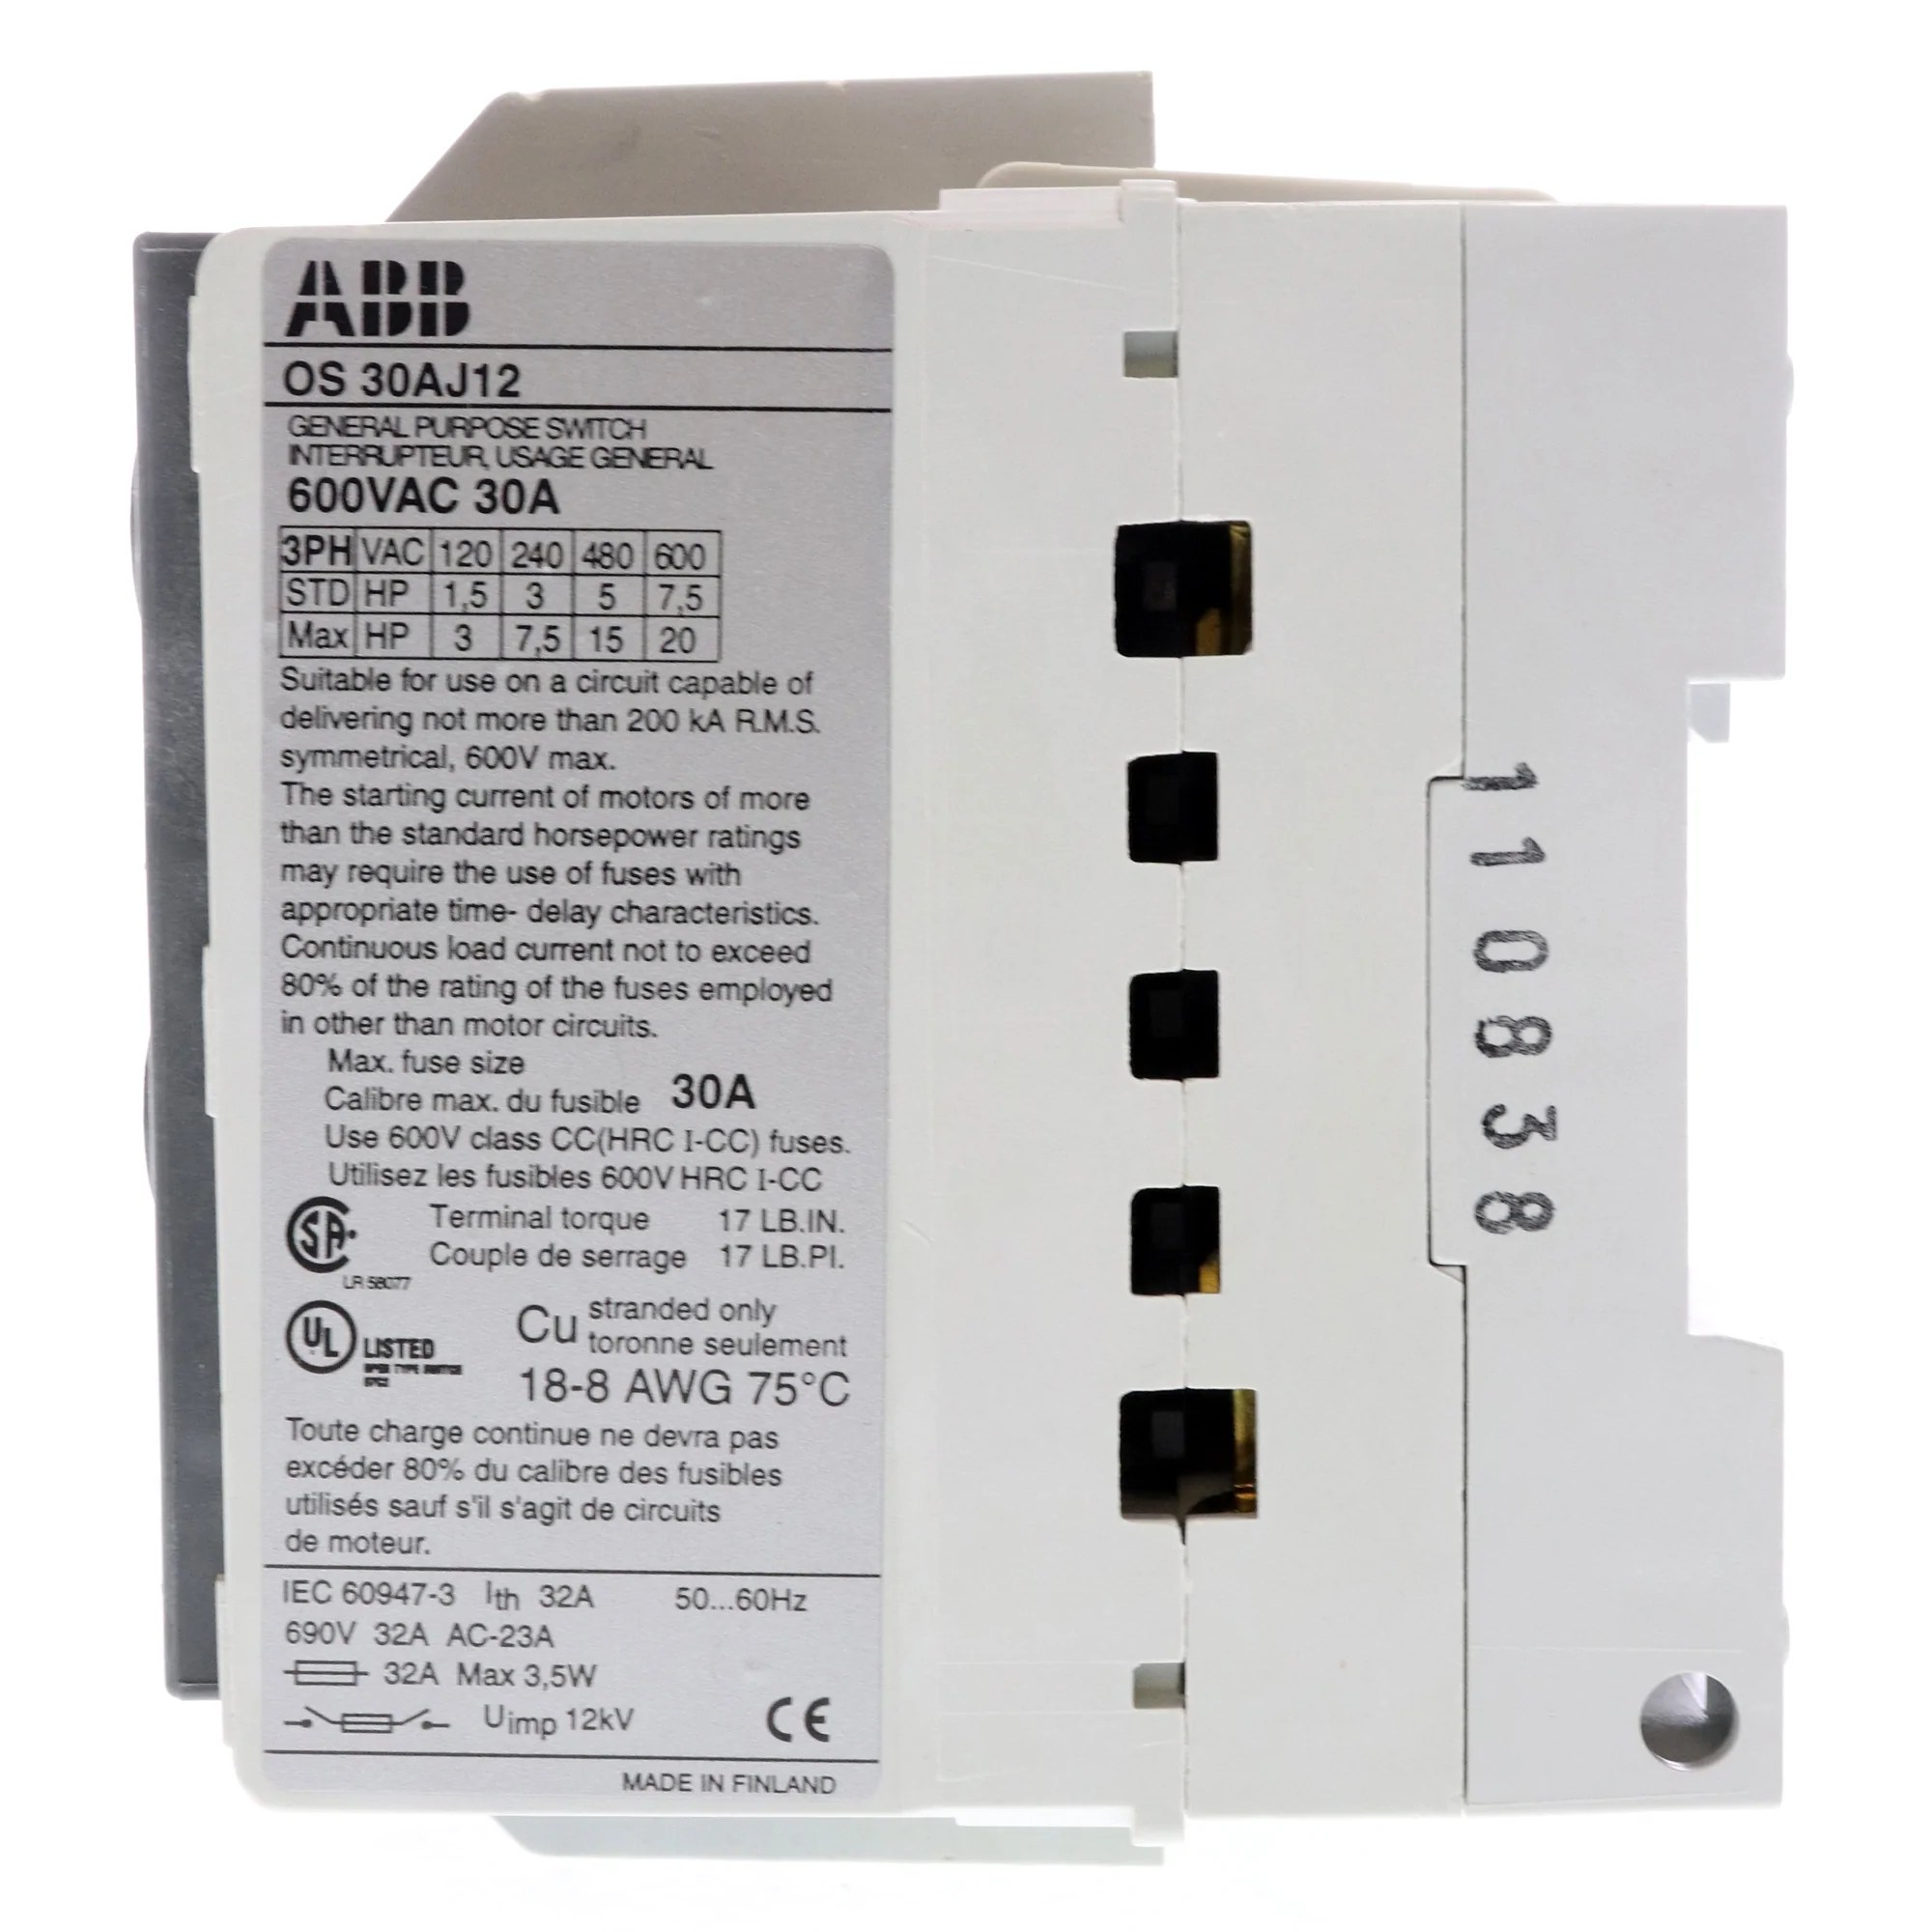 hight resolution of abb os 30aj12 fused open disconnect switch 30a 600v class j